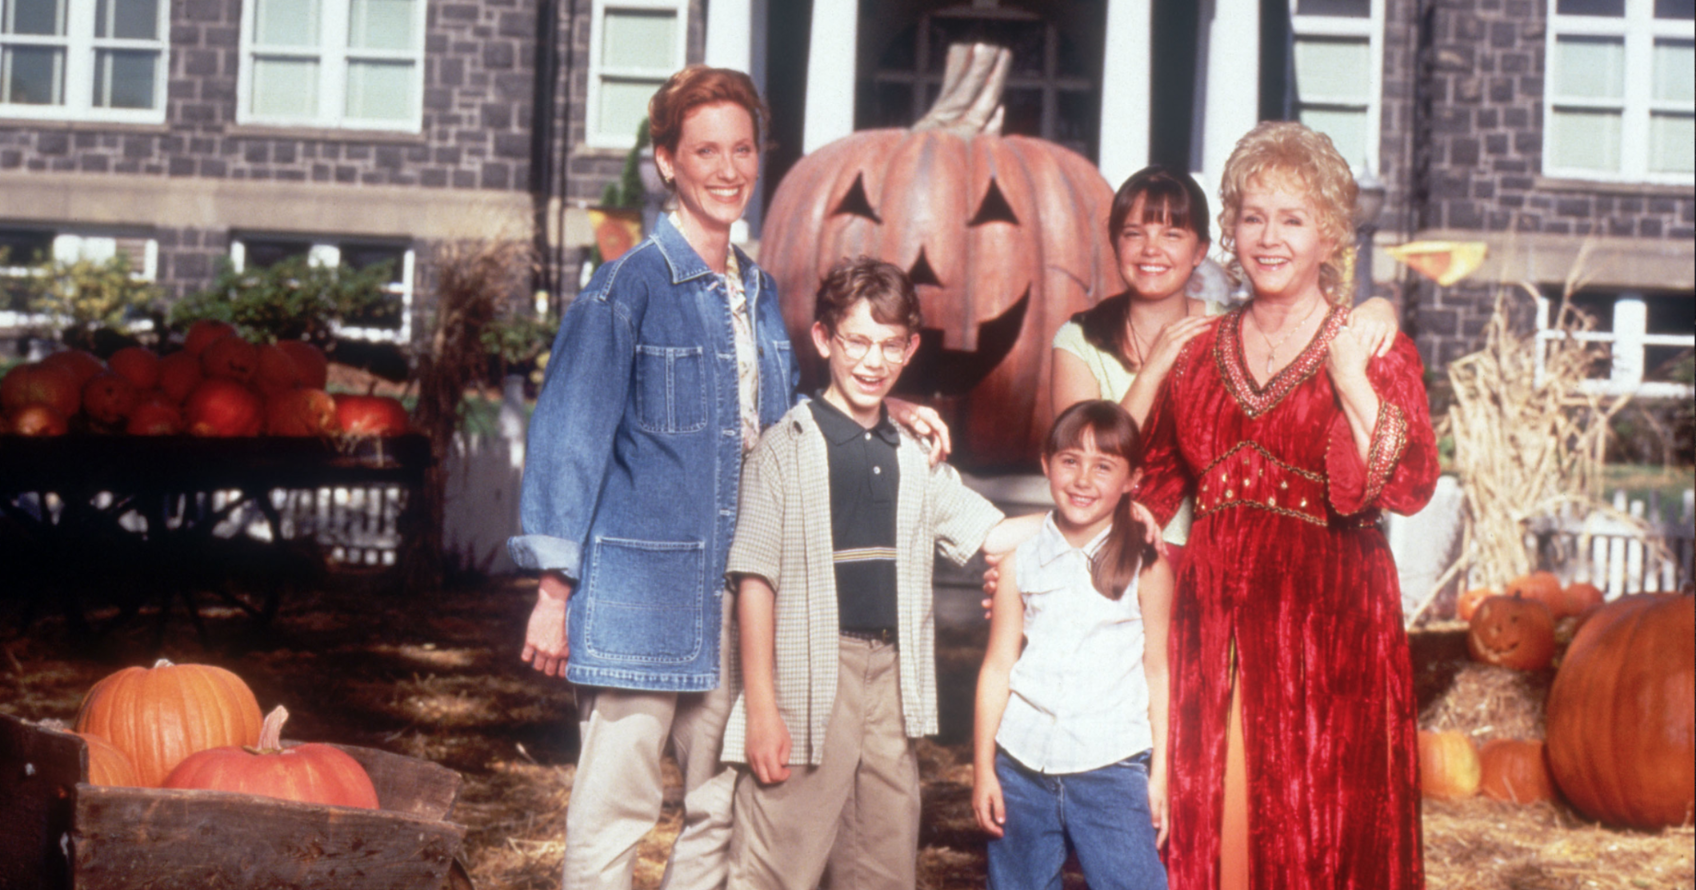 The Cast of Halloweentown Is Reuniting to Honor Debbie Reynolds